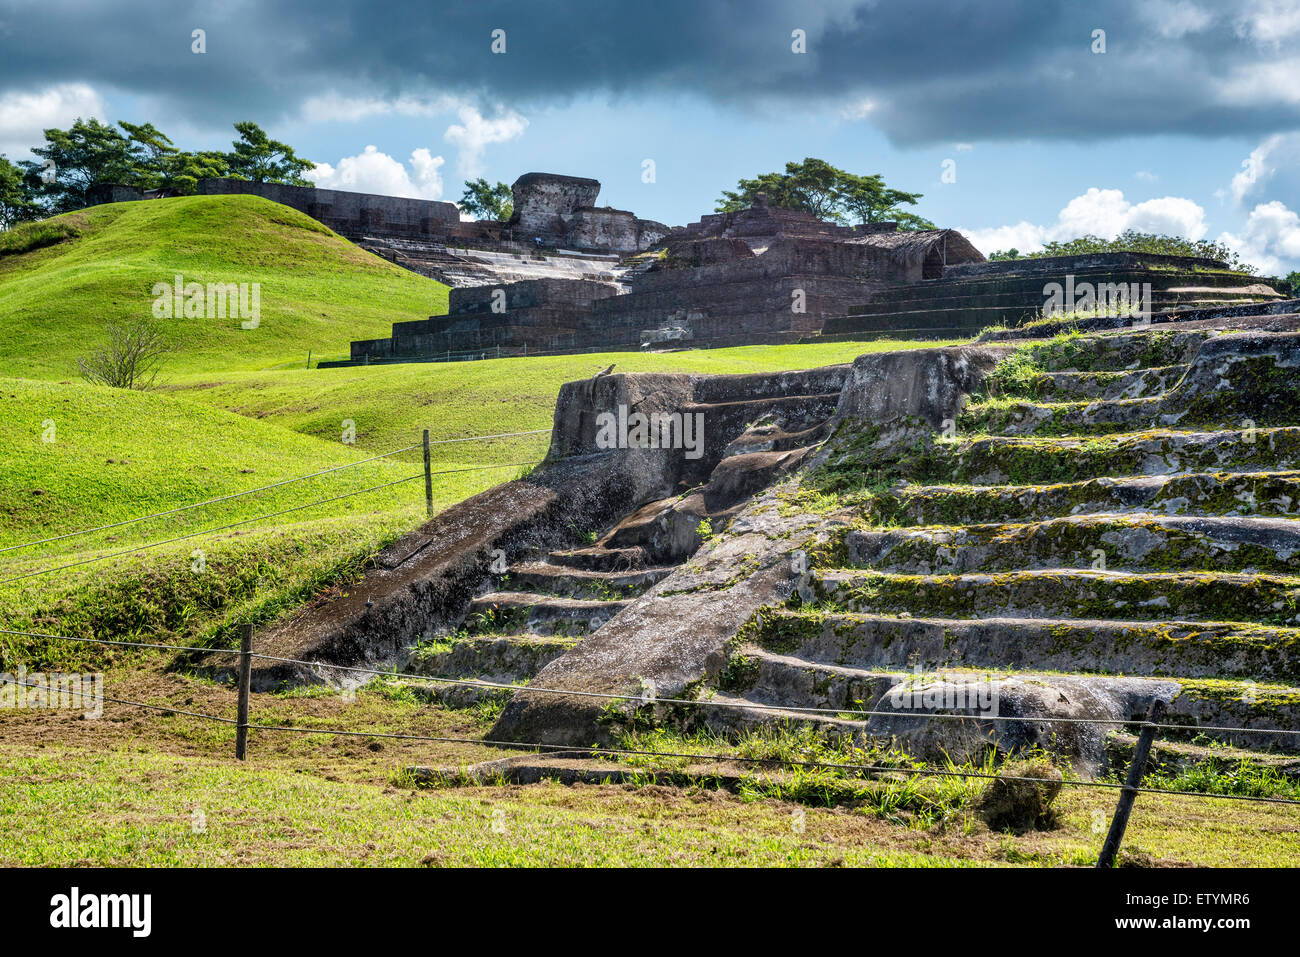 Templo III in foreground, El Palacio at Acropolis in distance, Maya ruins at Comalcalco archaeological site, Tabasco, - Stock Image